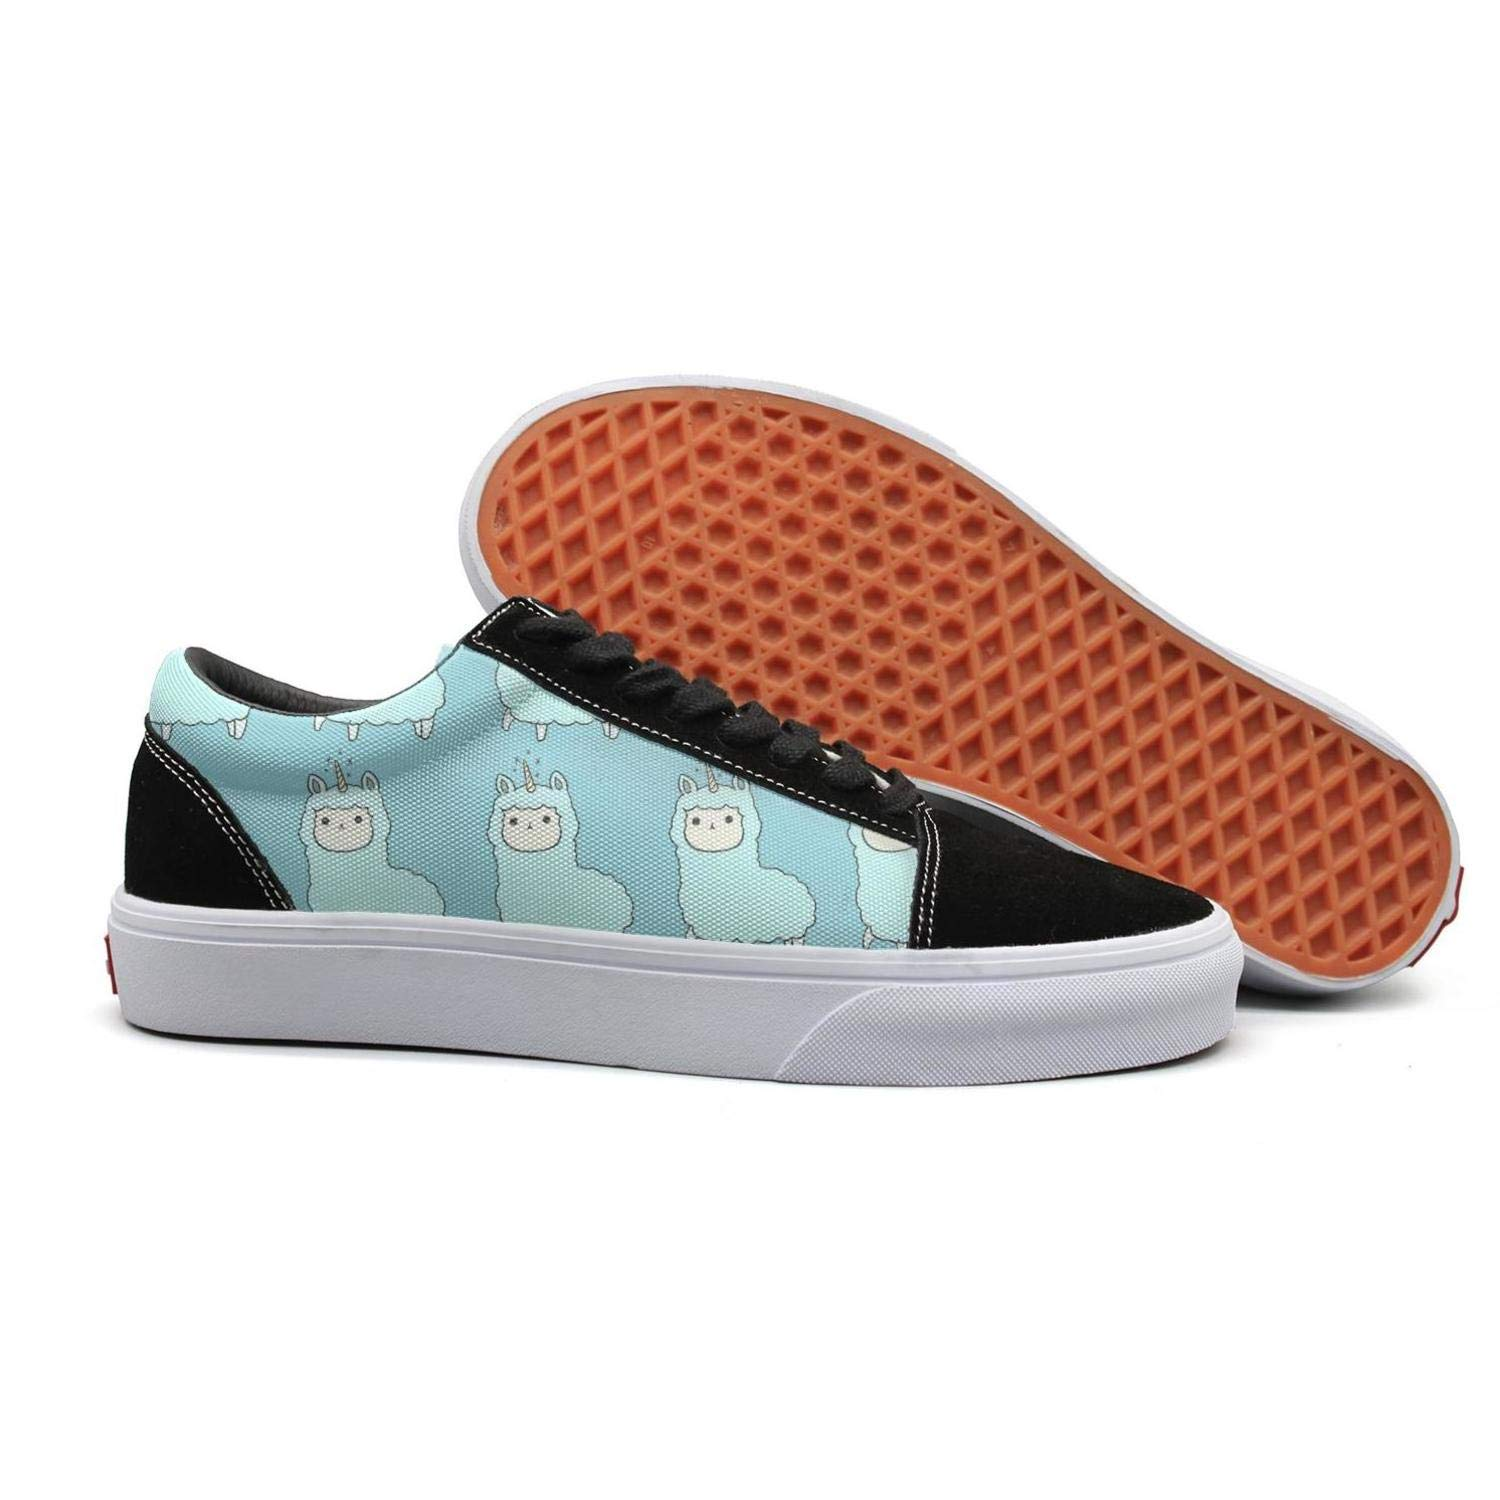 Peru Llama Cartoon Alpaca Woman Flat Lace-up Sneaker for Womens Highly Breathable Budge Leather Shoe